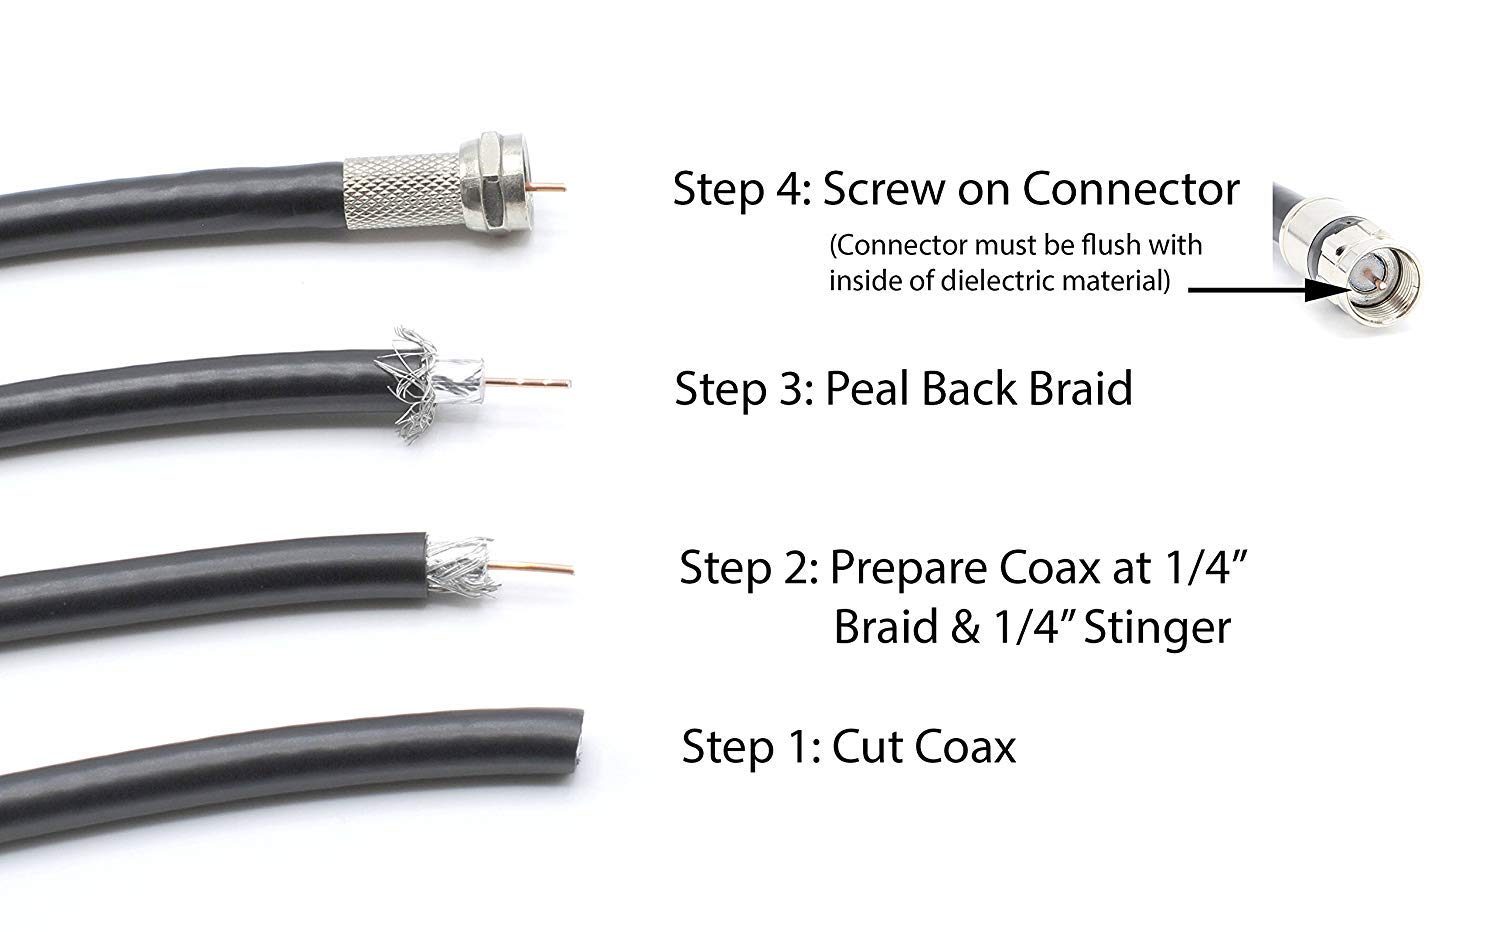 Amazon.com: THE CIMPLE CO - Coaxial Cable Screw on Connector (Twist on Connector/Fitting) for RG59 Coaxial Cable. Easy Installation, No Tools Required.